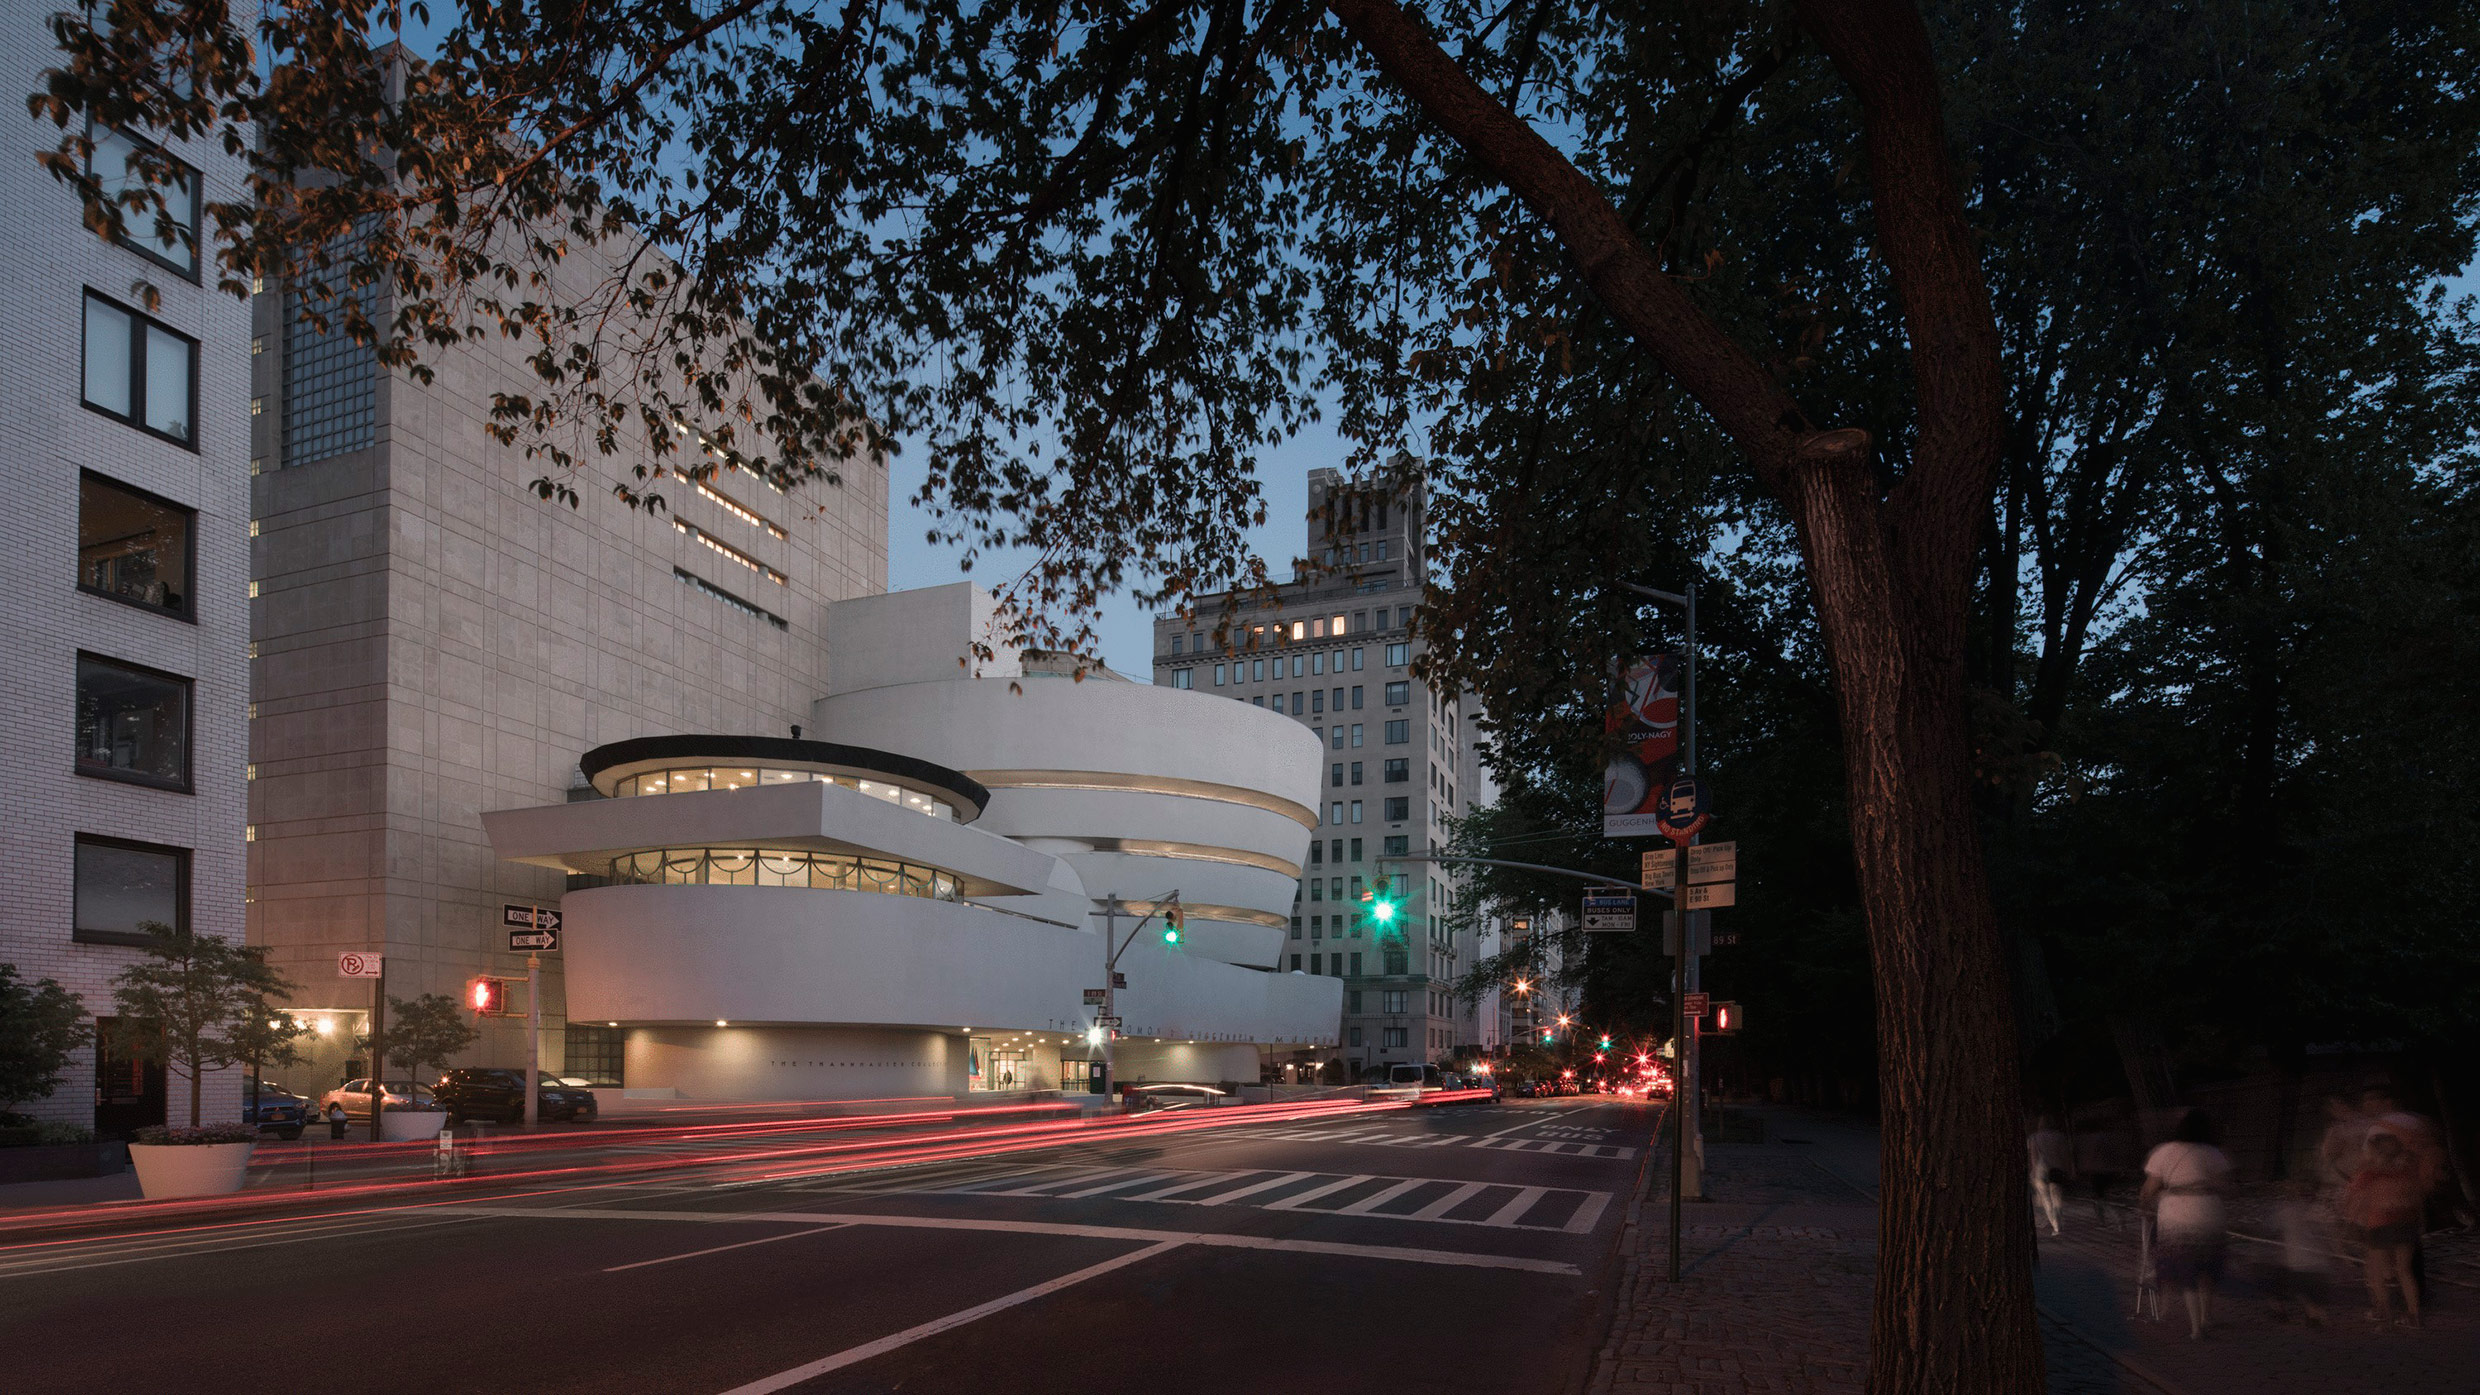 Exhibition Overview About The Architect Exhibition Topics Vocabulary  Resources A View Of The Solomon R. Guggenheim Museum In New York City At  Late Dusk